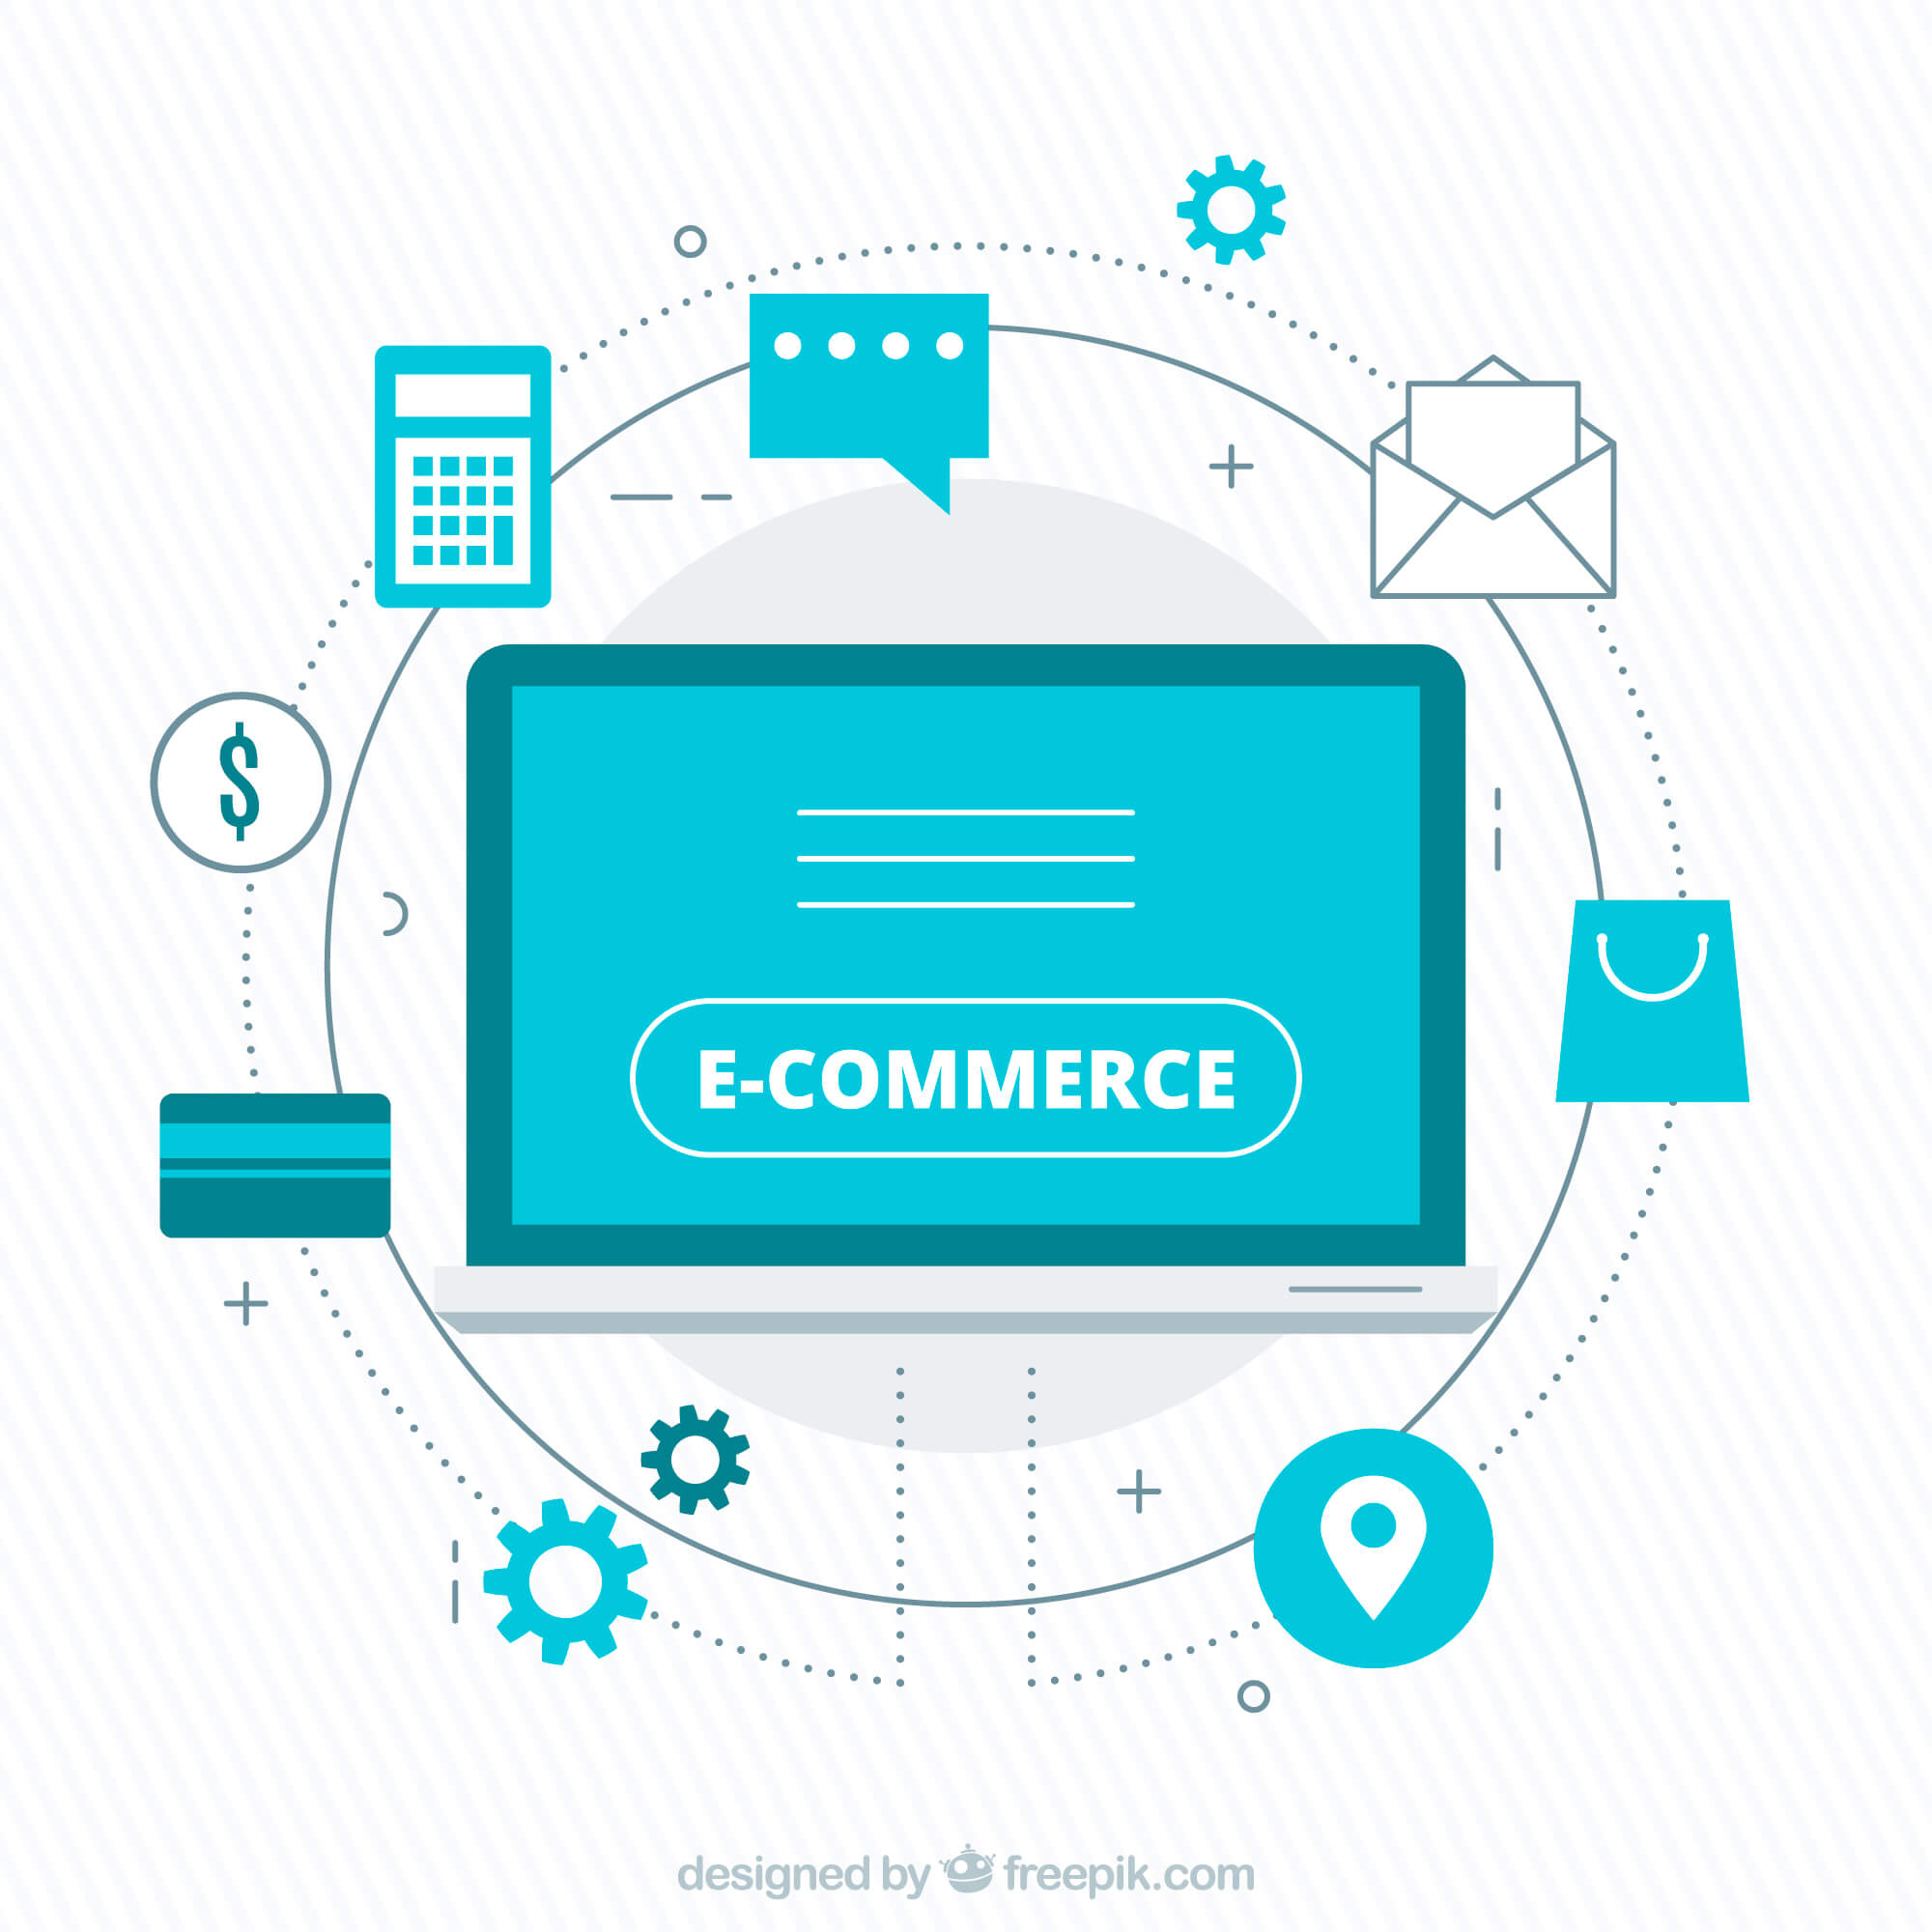 Woocommerce Or Shopify?  Which One Is Better For E-commerce? | AIA